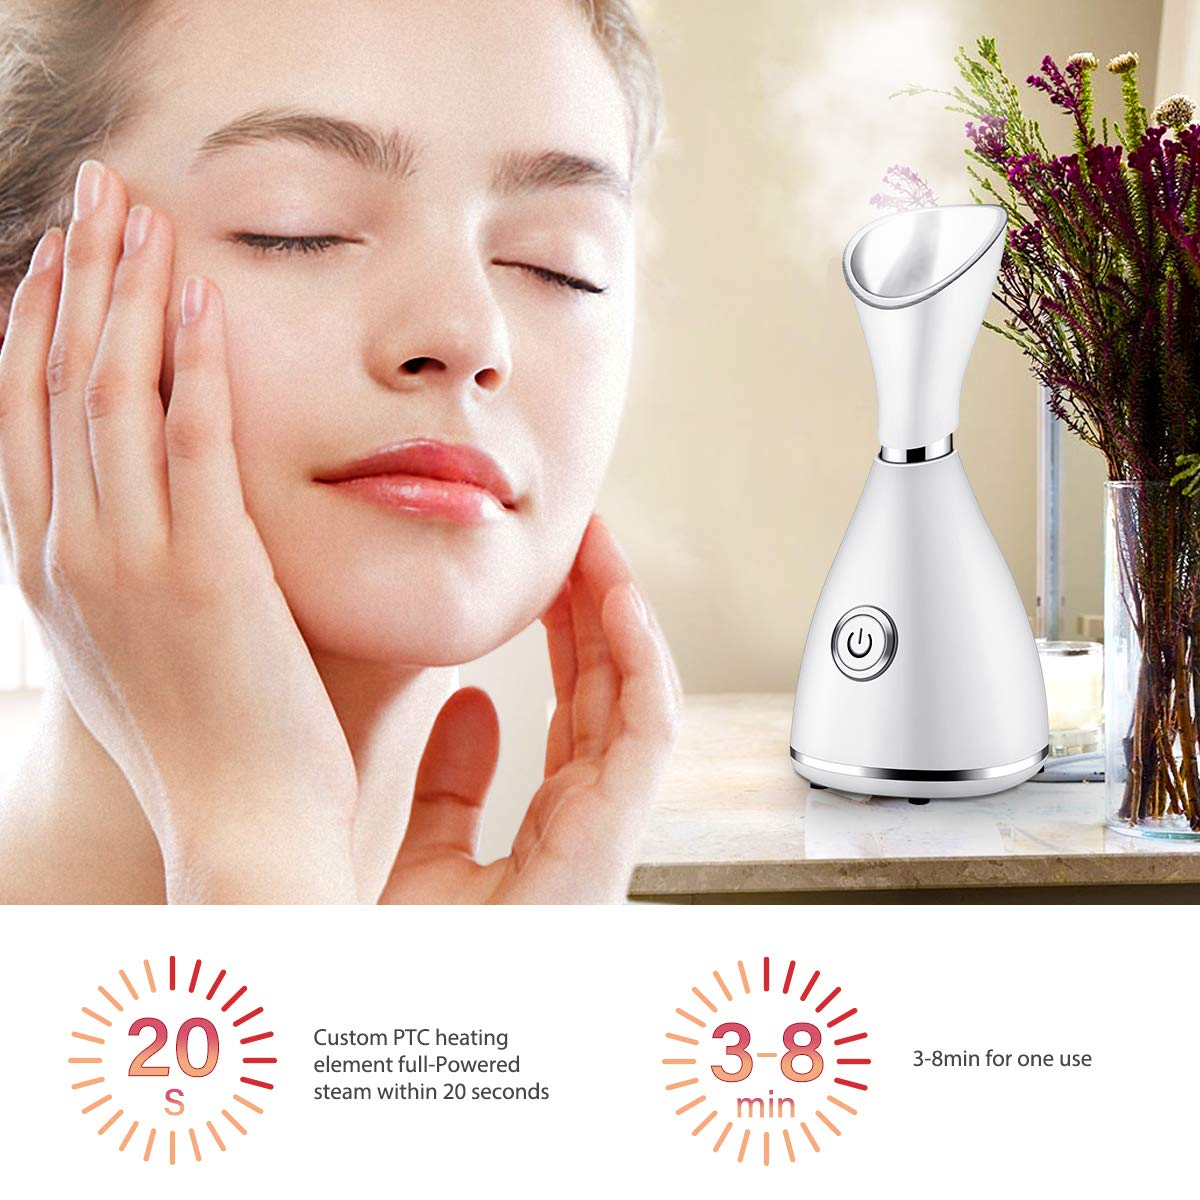 JERXUNY Nano Ionic Facial Steamer Warm Mist Face Steamer for Women Girls Moisturizing Pores Cleaning Home Facial 6 piece Prepare for Your Face Cleaning with Bonus Stainless Steel Kit Hair Band